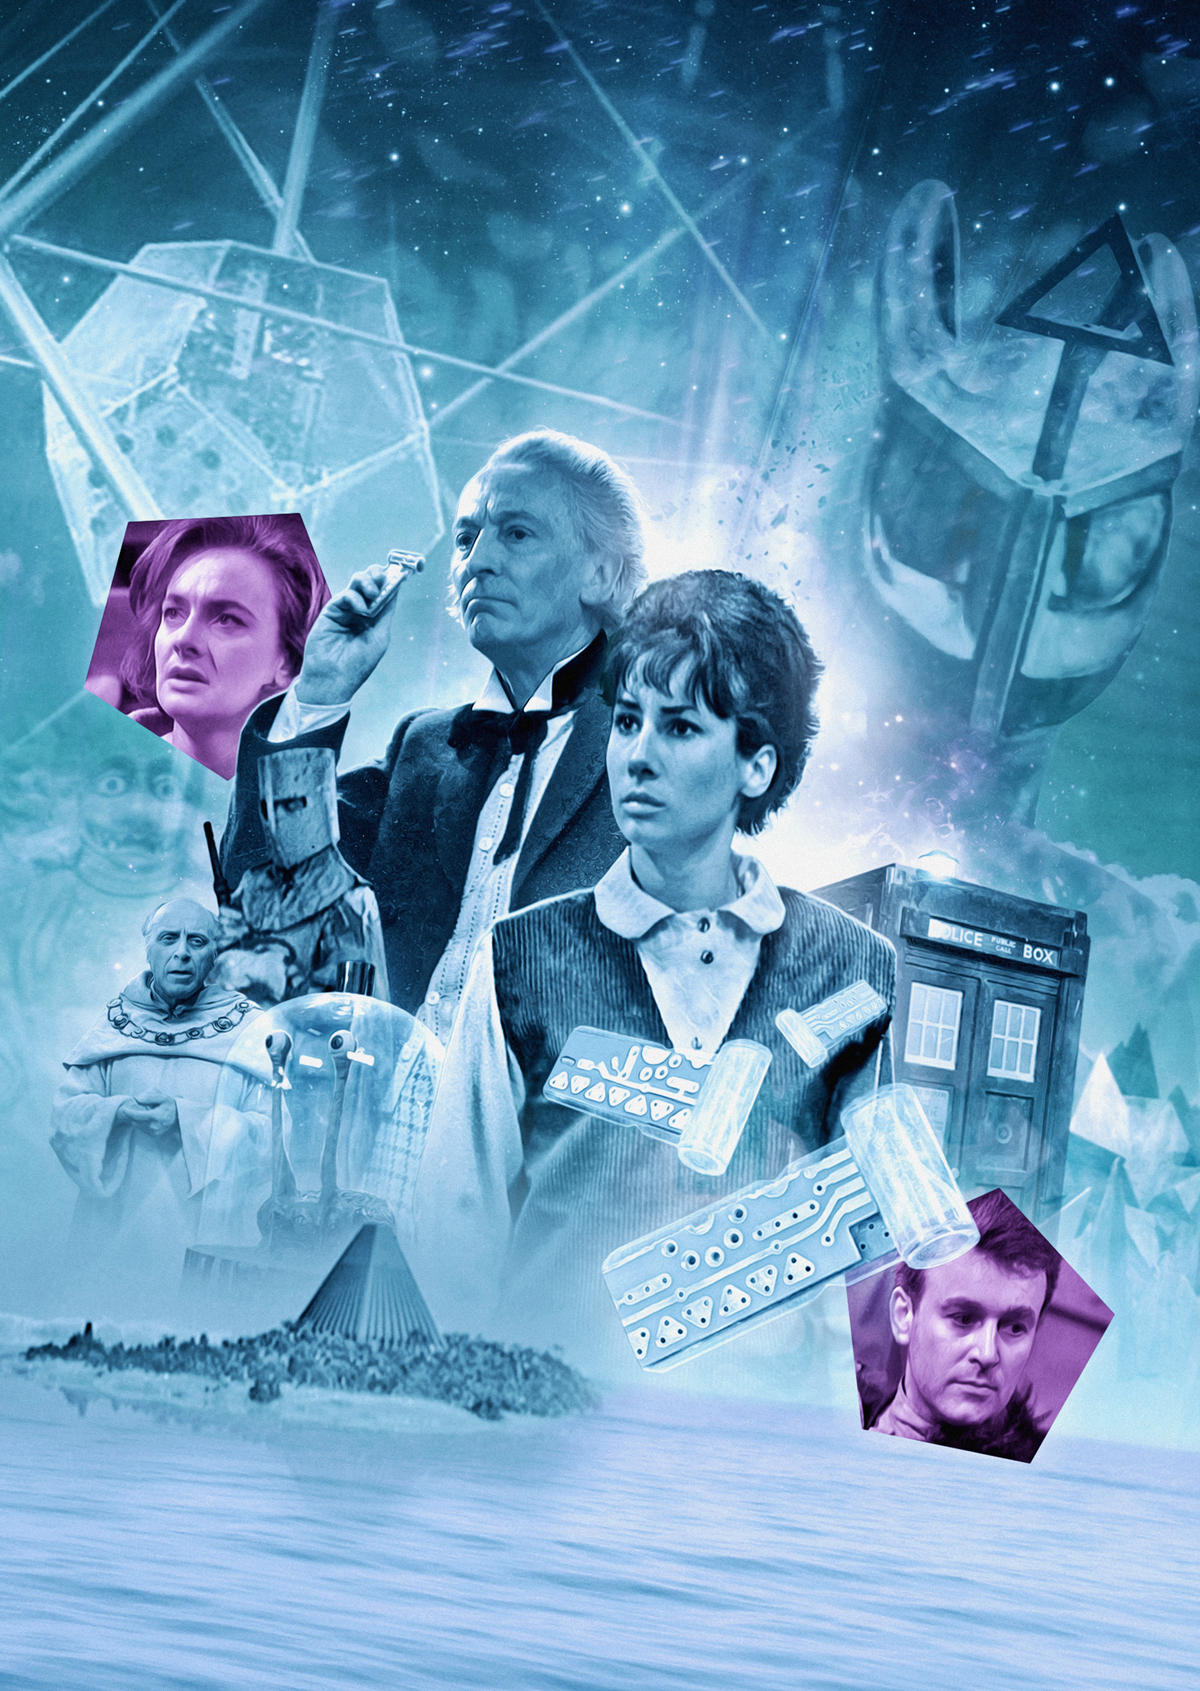 Doctor Who Dvd Covers On Behance